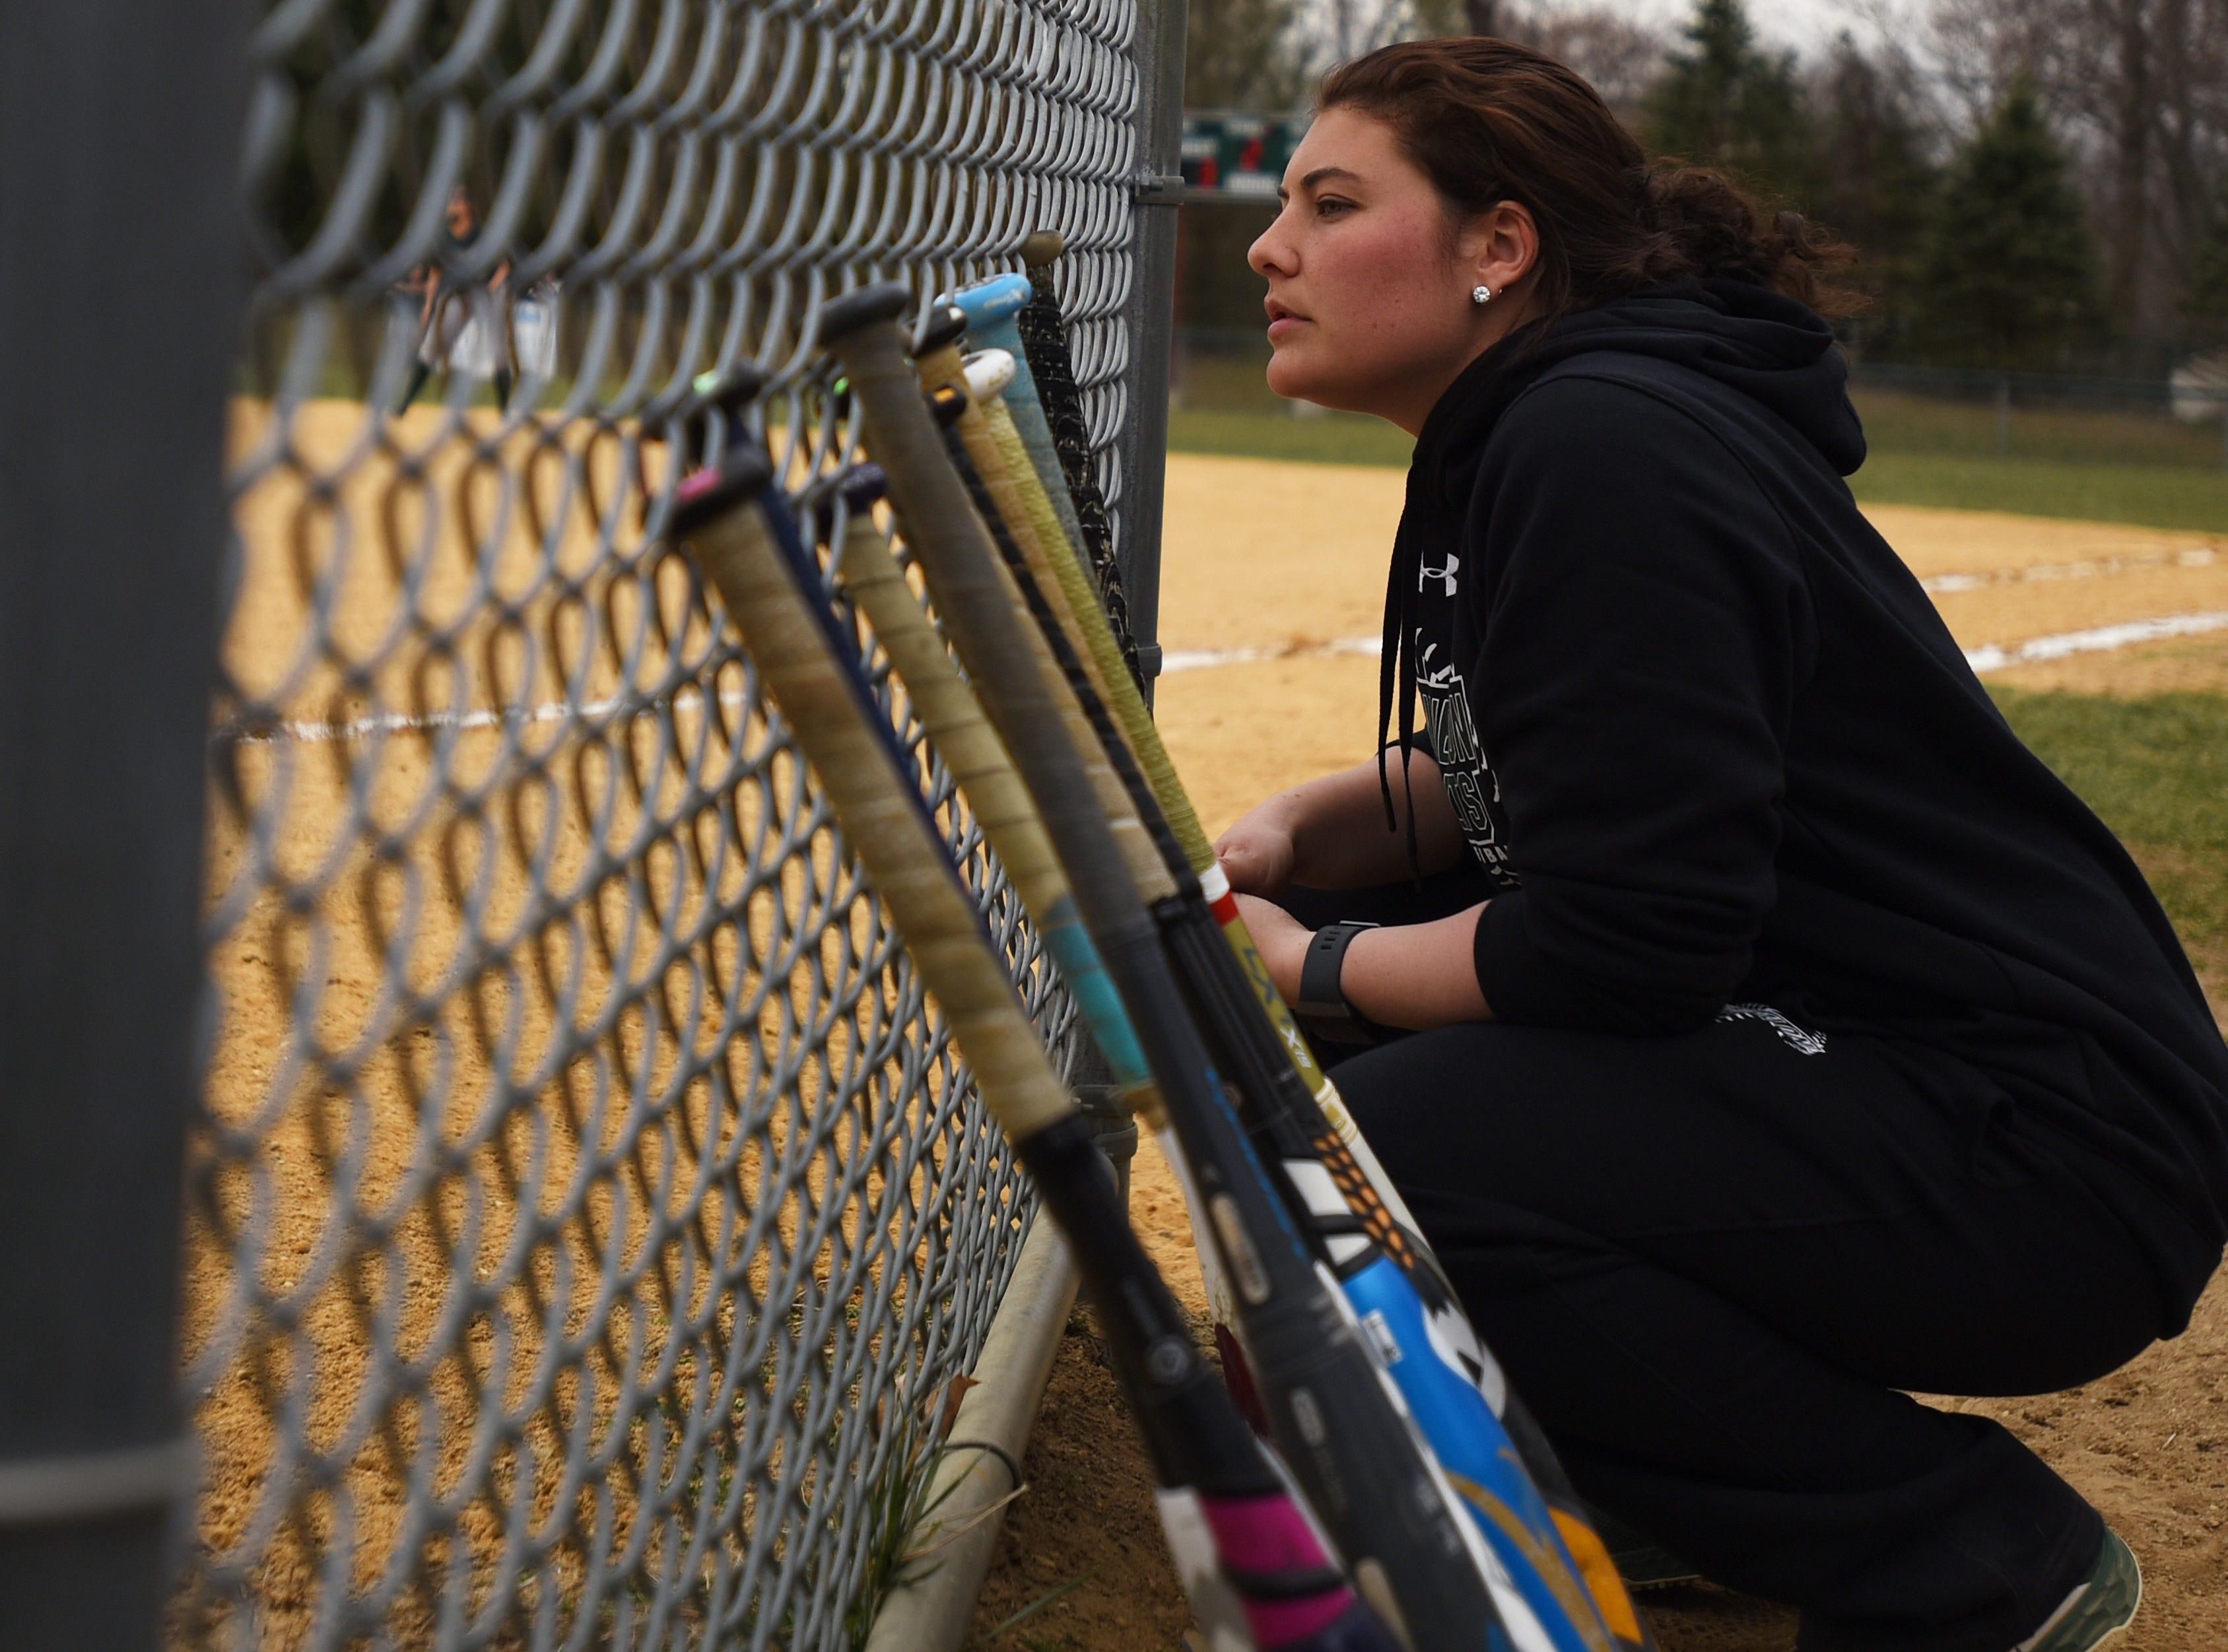 Pequannock at Kinnelon softball game in Kinnelon on Friday April 12, 2019. Kinnelon coach Marissa Bariso crouches as she watches the game.